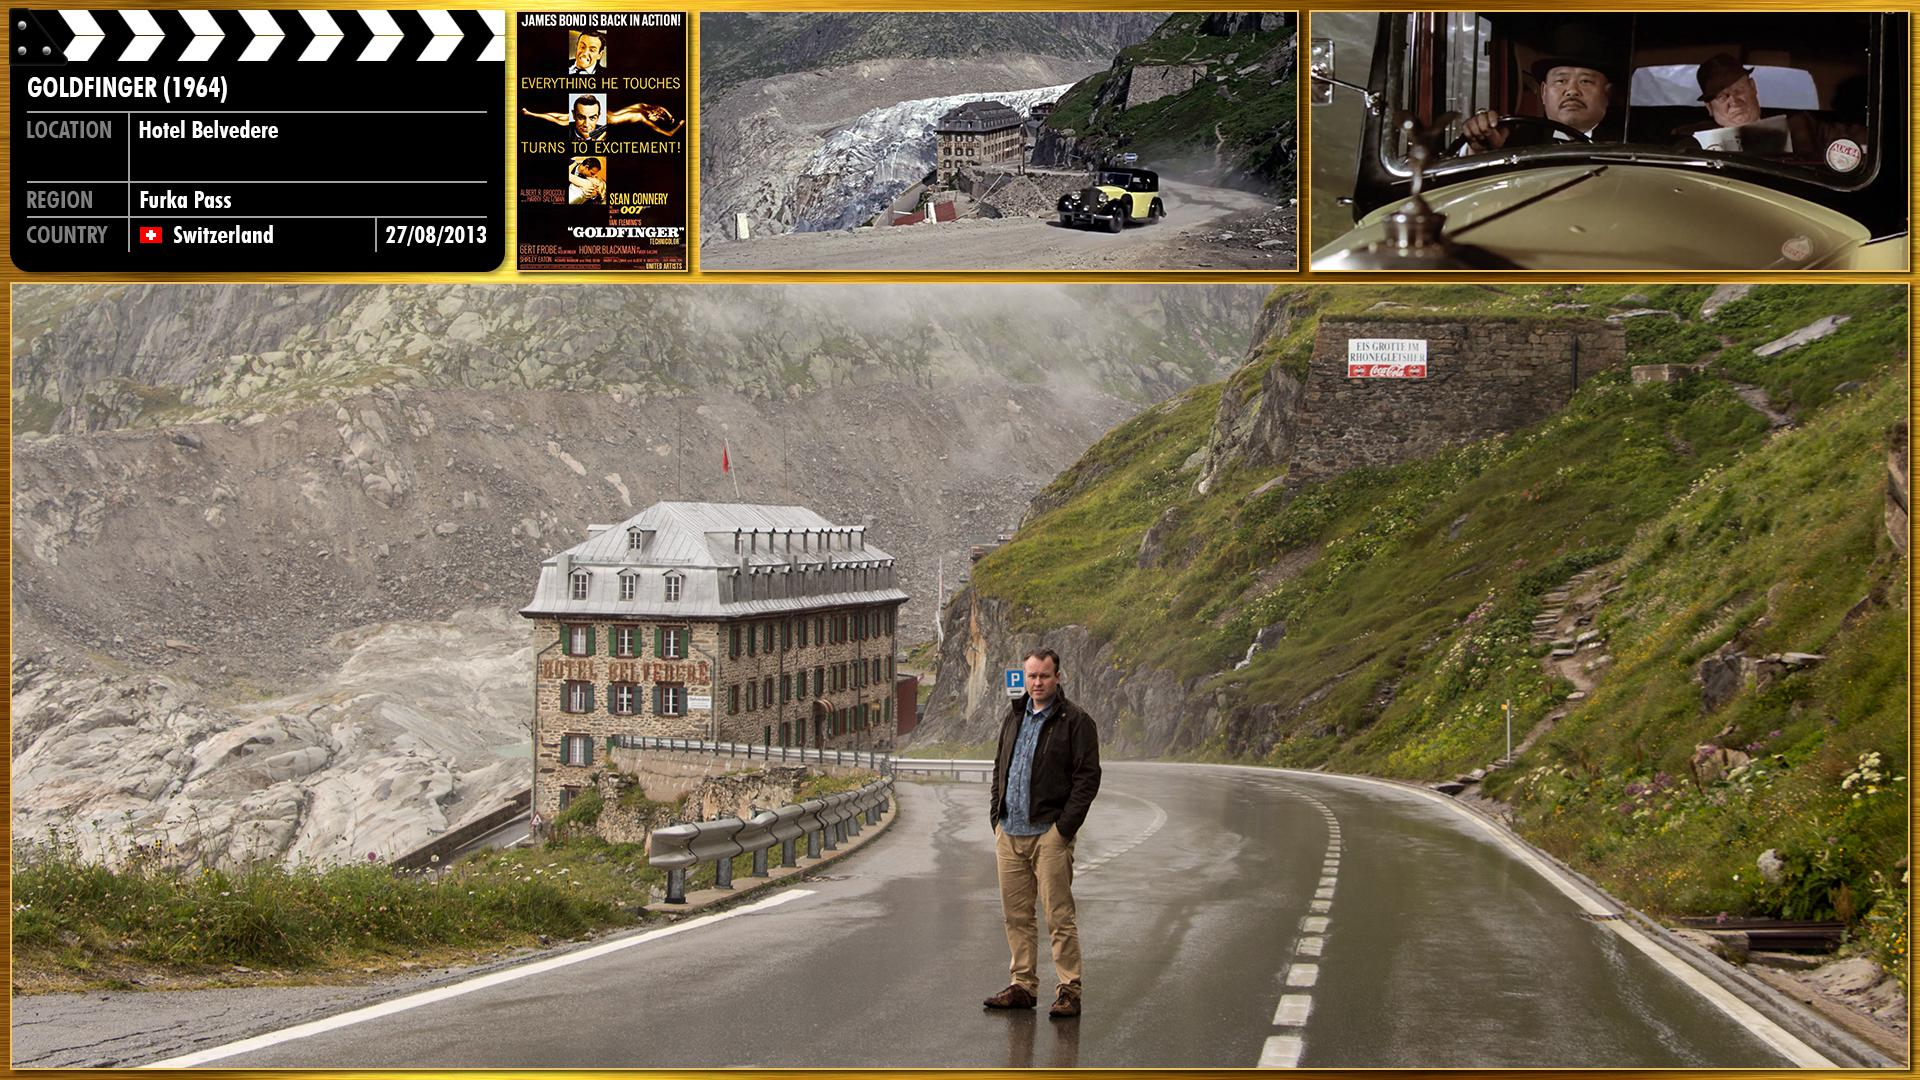 Filming location photo for Goldfinger (1964) 5 of 6